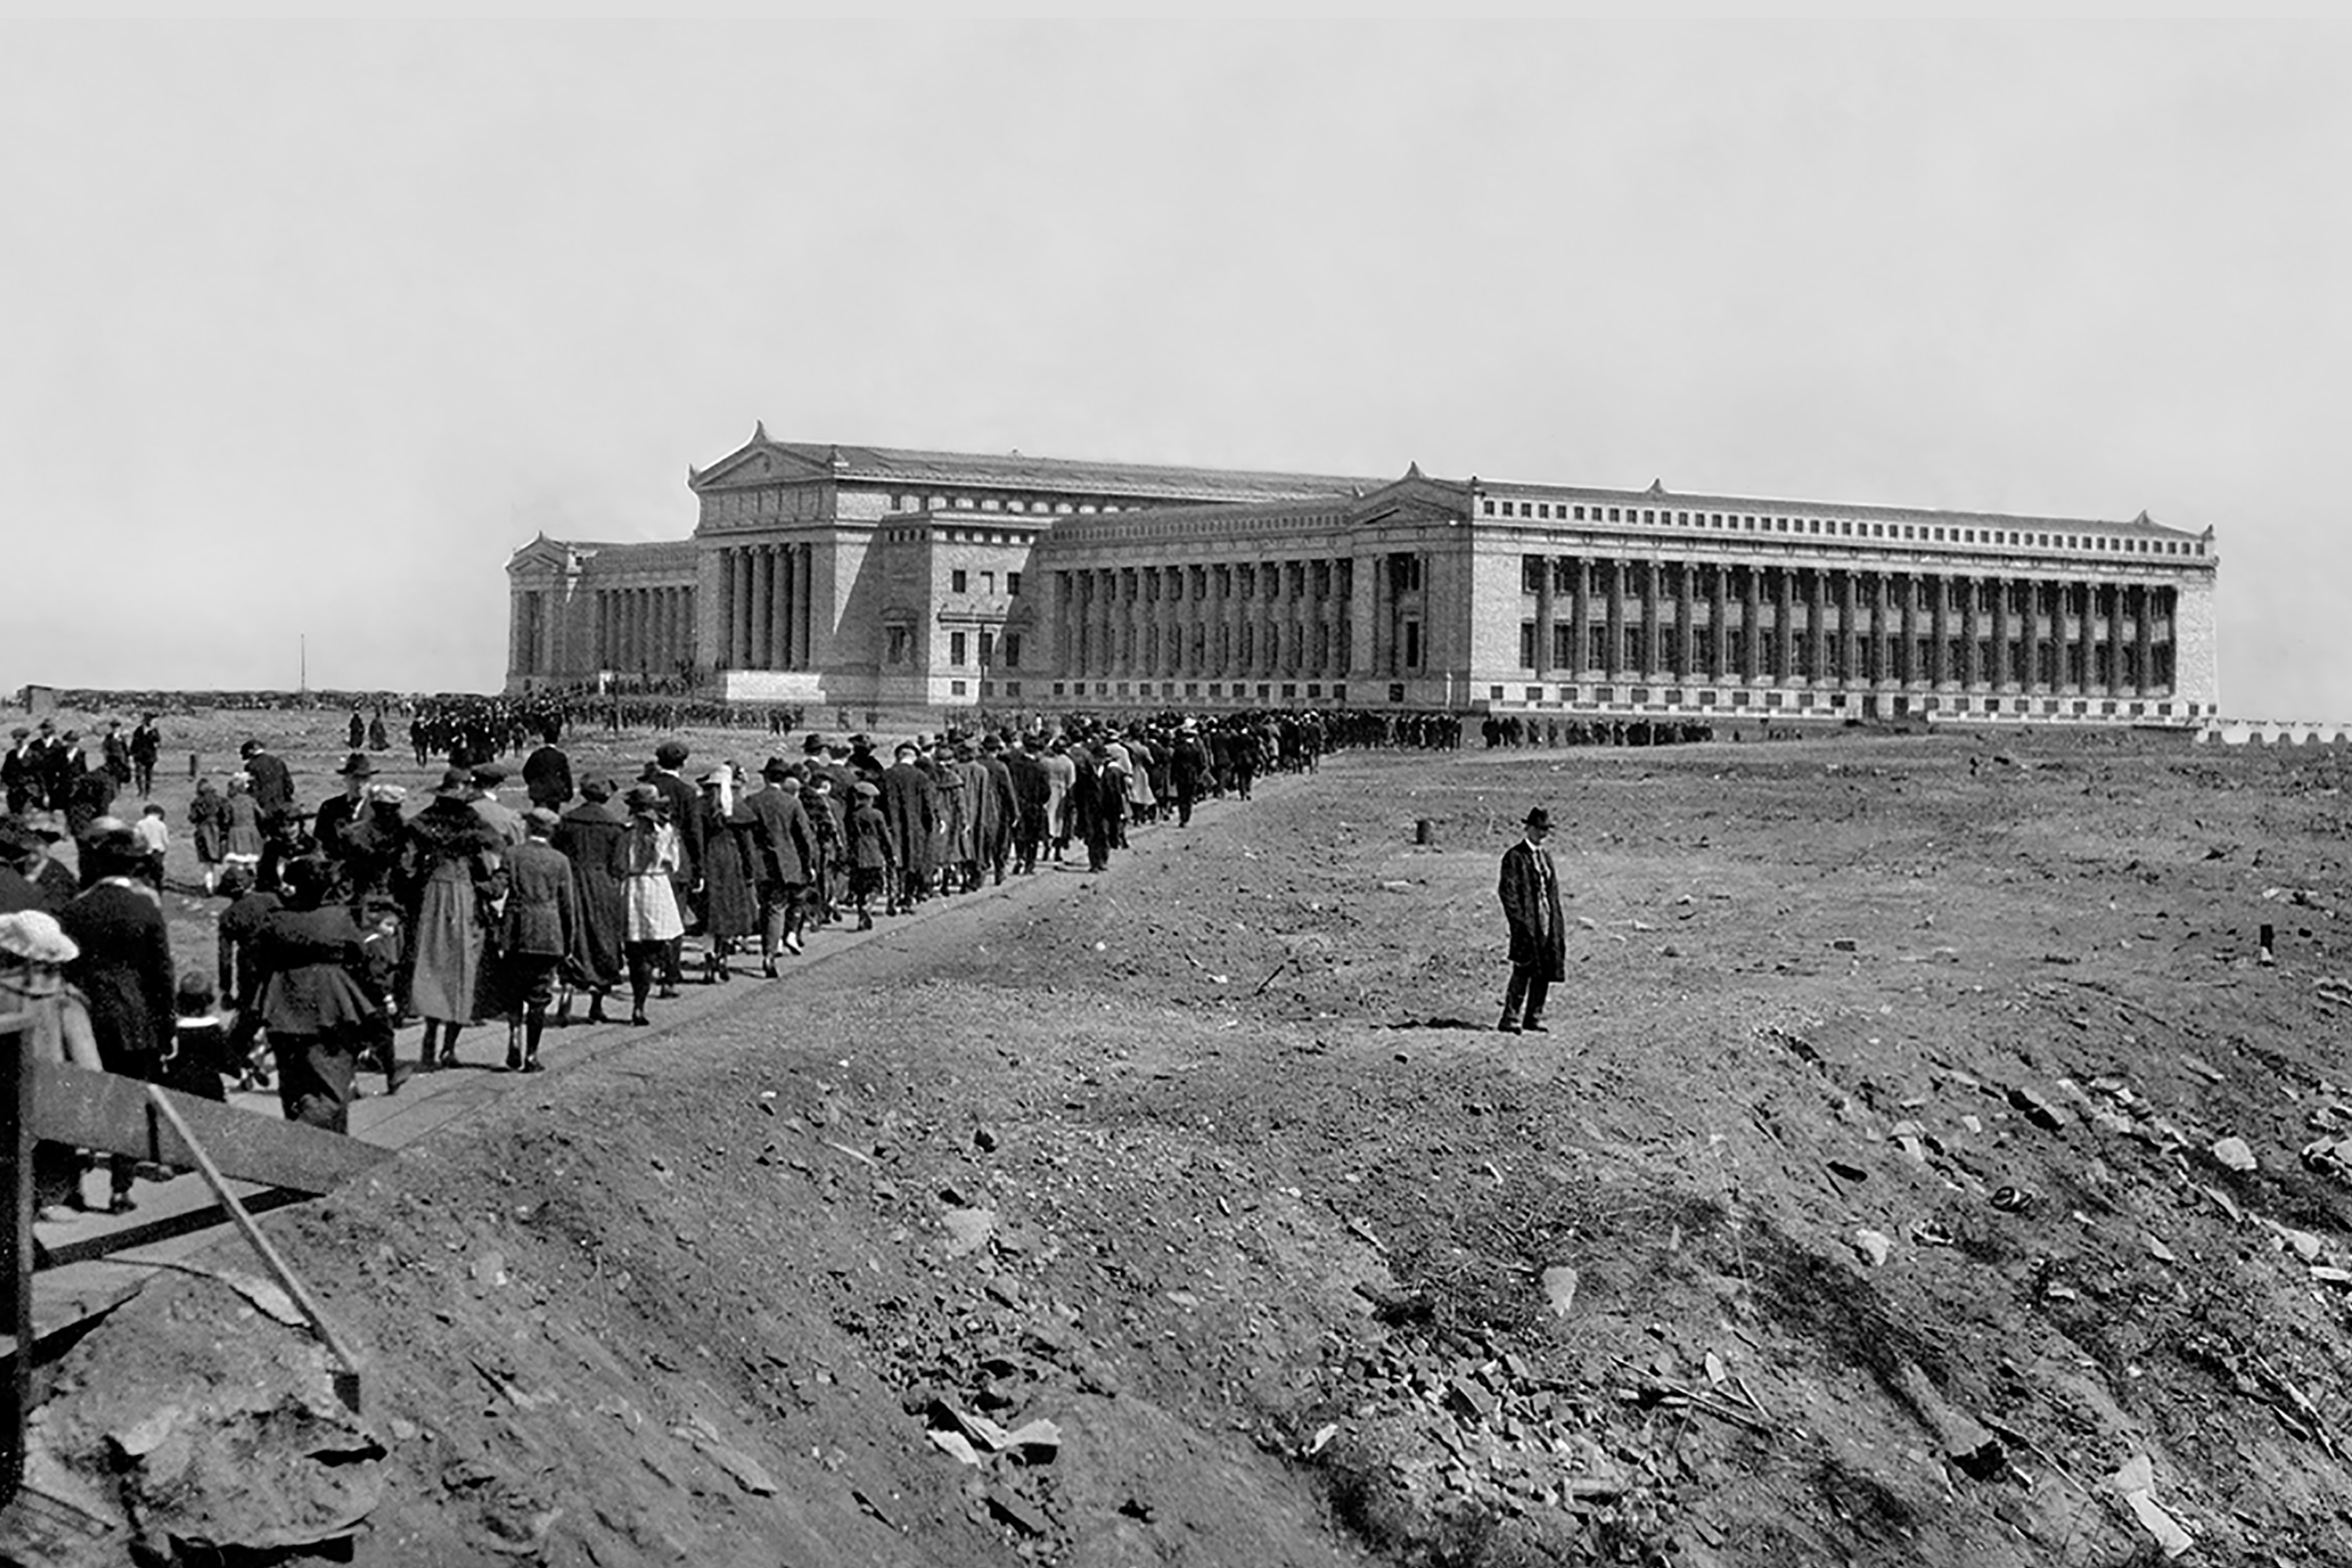 Crowds cross a wooden bridge and approach the Field Columbian Museum on opening day. A lone man stands to the side. The entire exterior view of the Museum's north and west facades are visible in the background.